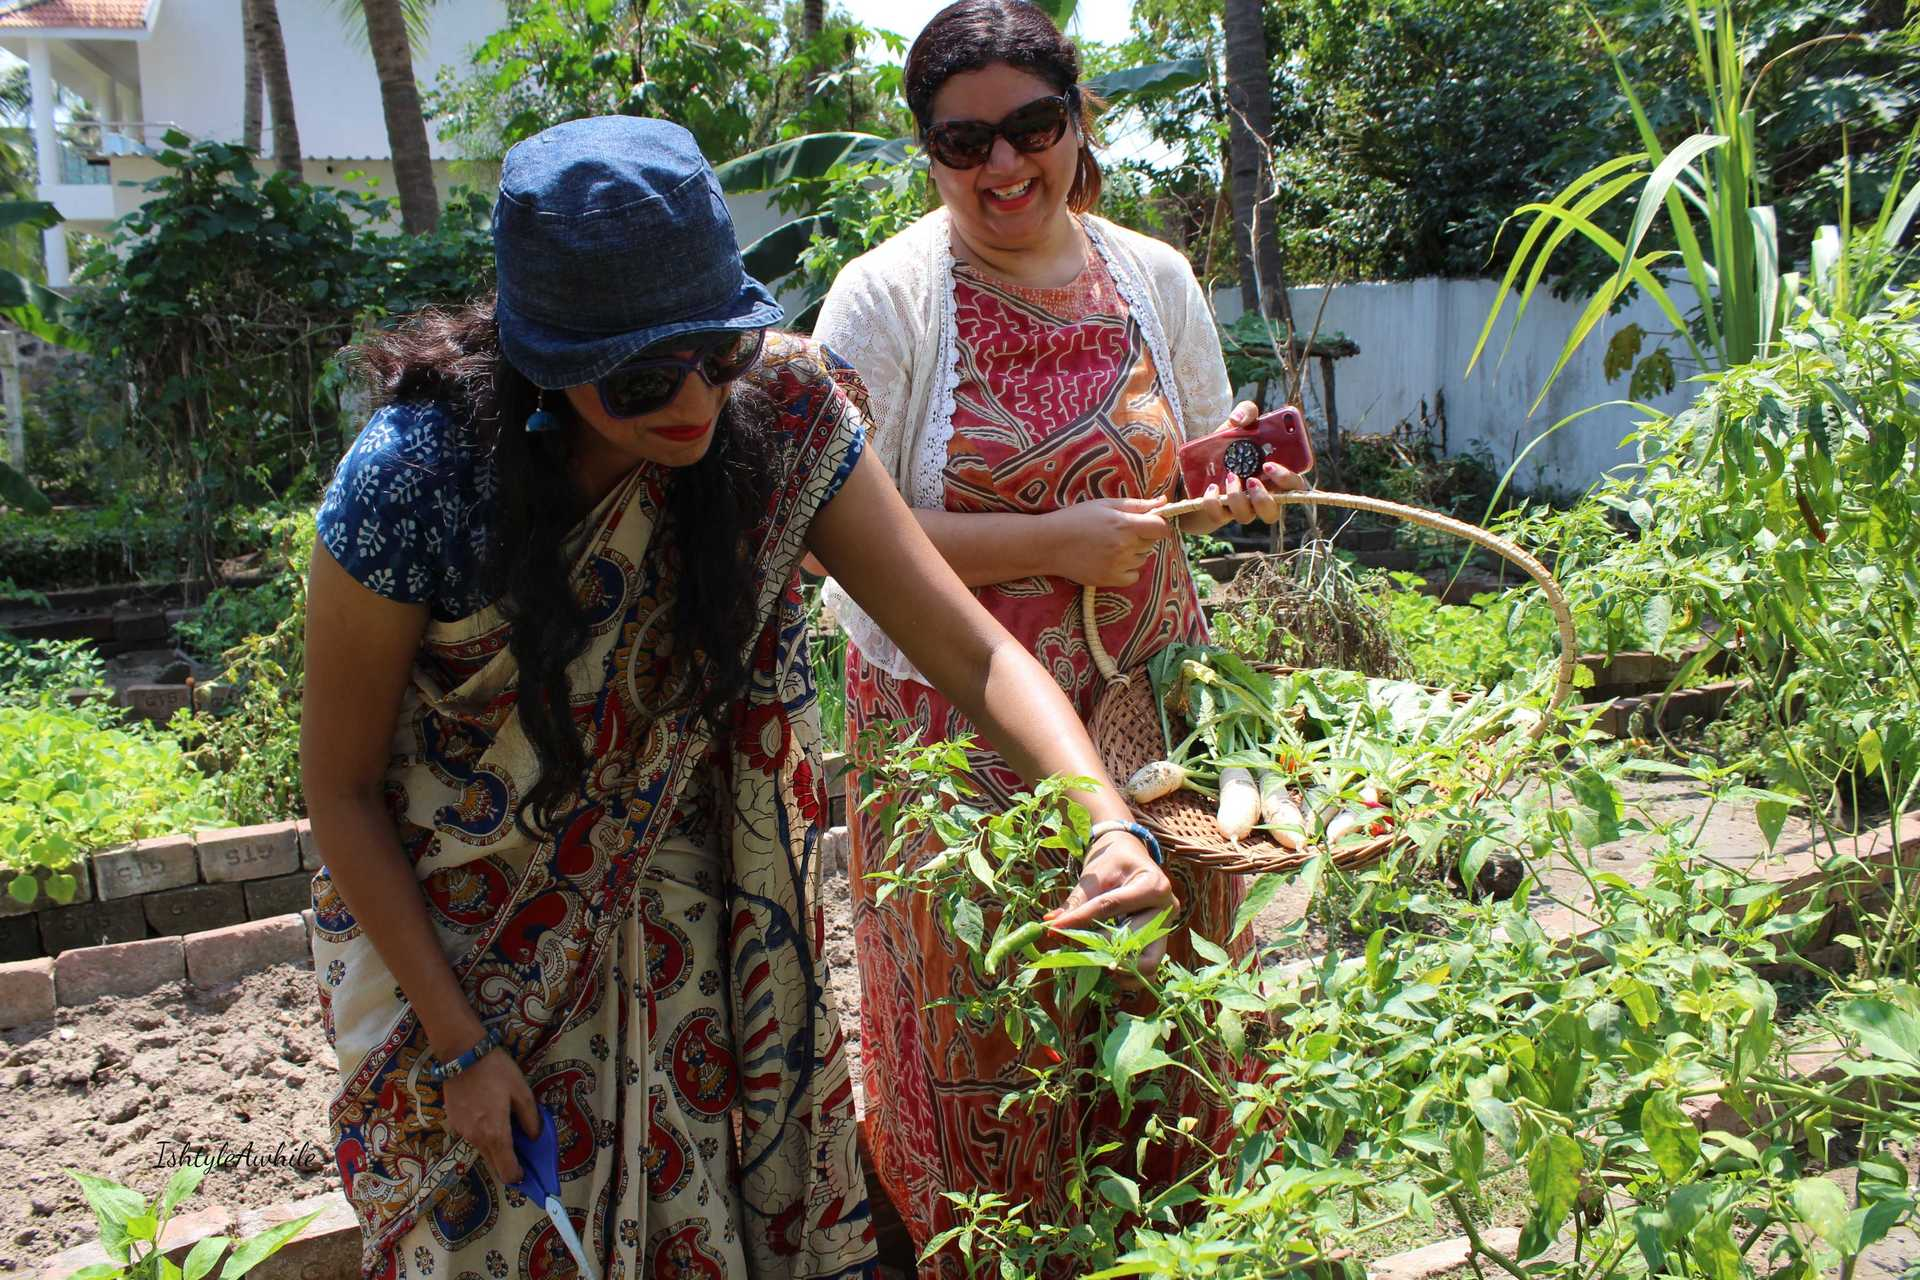 IshtyleAwhile - A Chennai based Indian Fashion Blog - organic farming in chennai